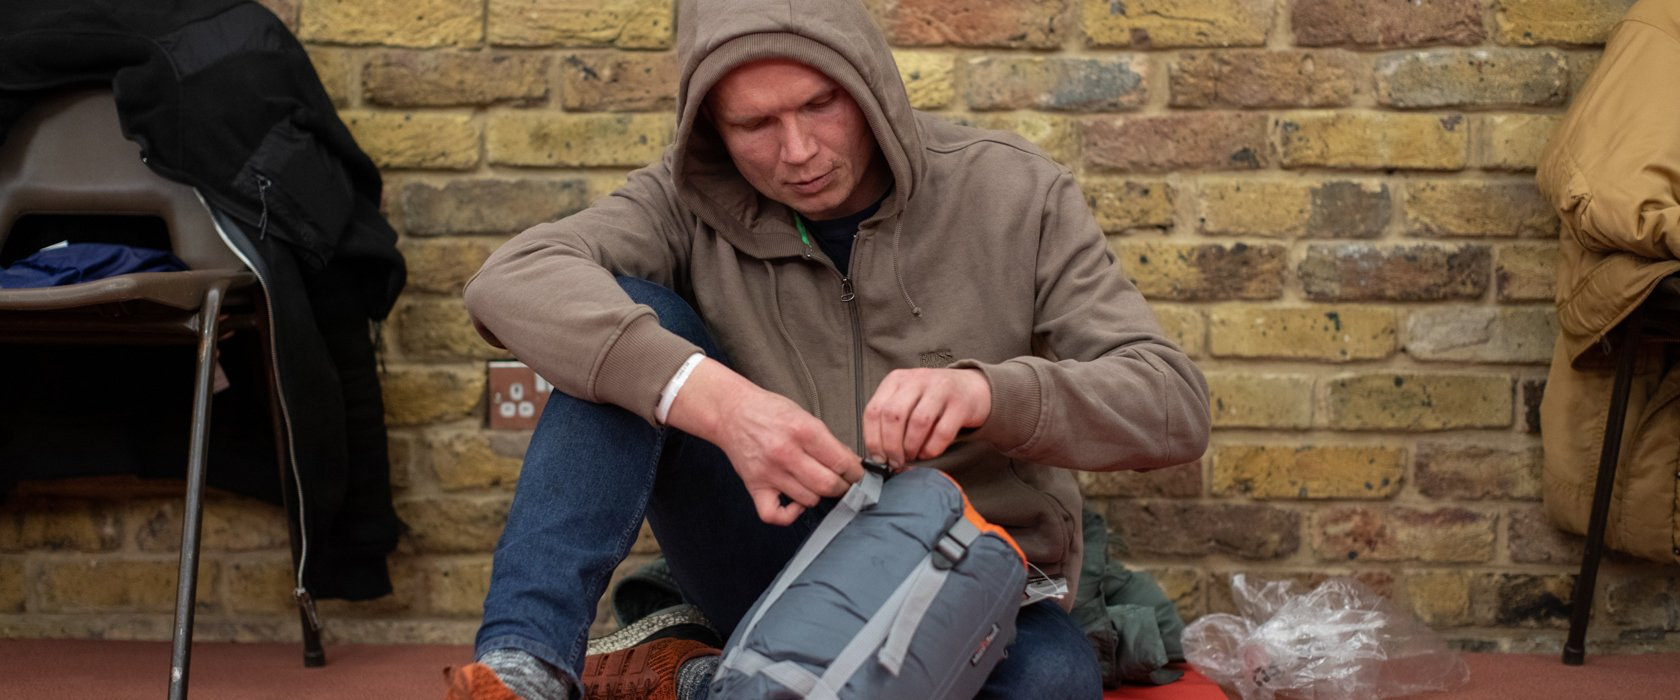 Thousands not counted in rough sleeping report